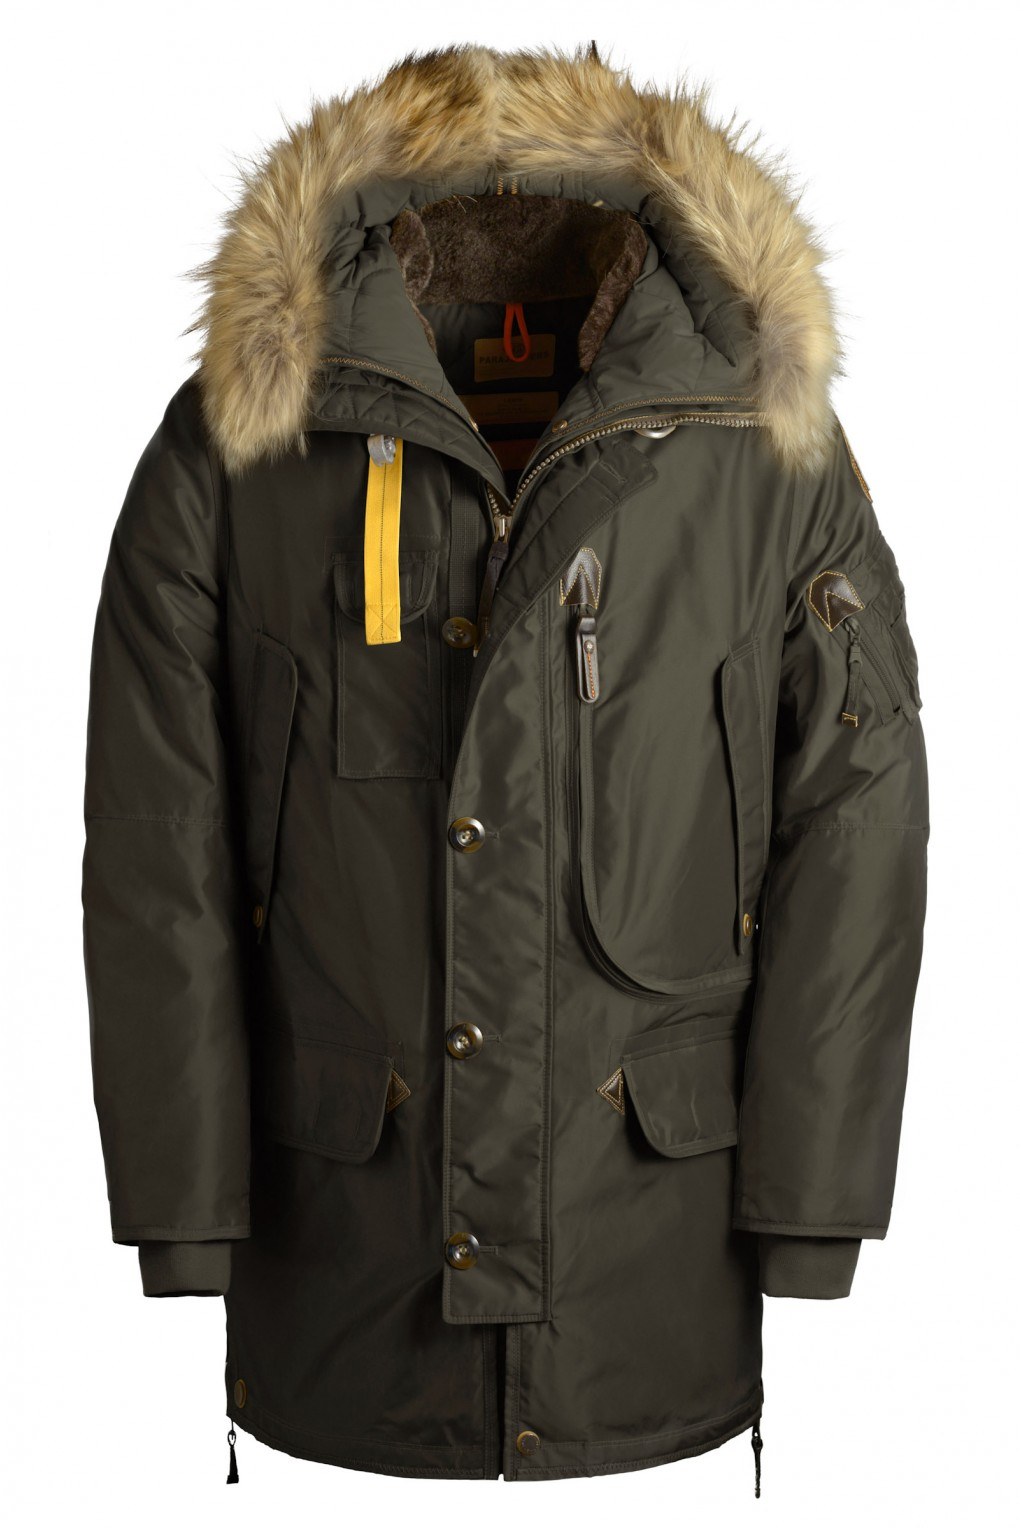 parajumpers KODIAK man outerwear Olive